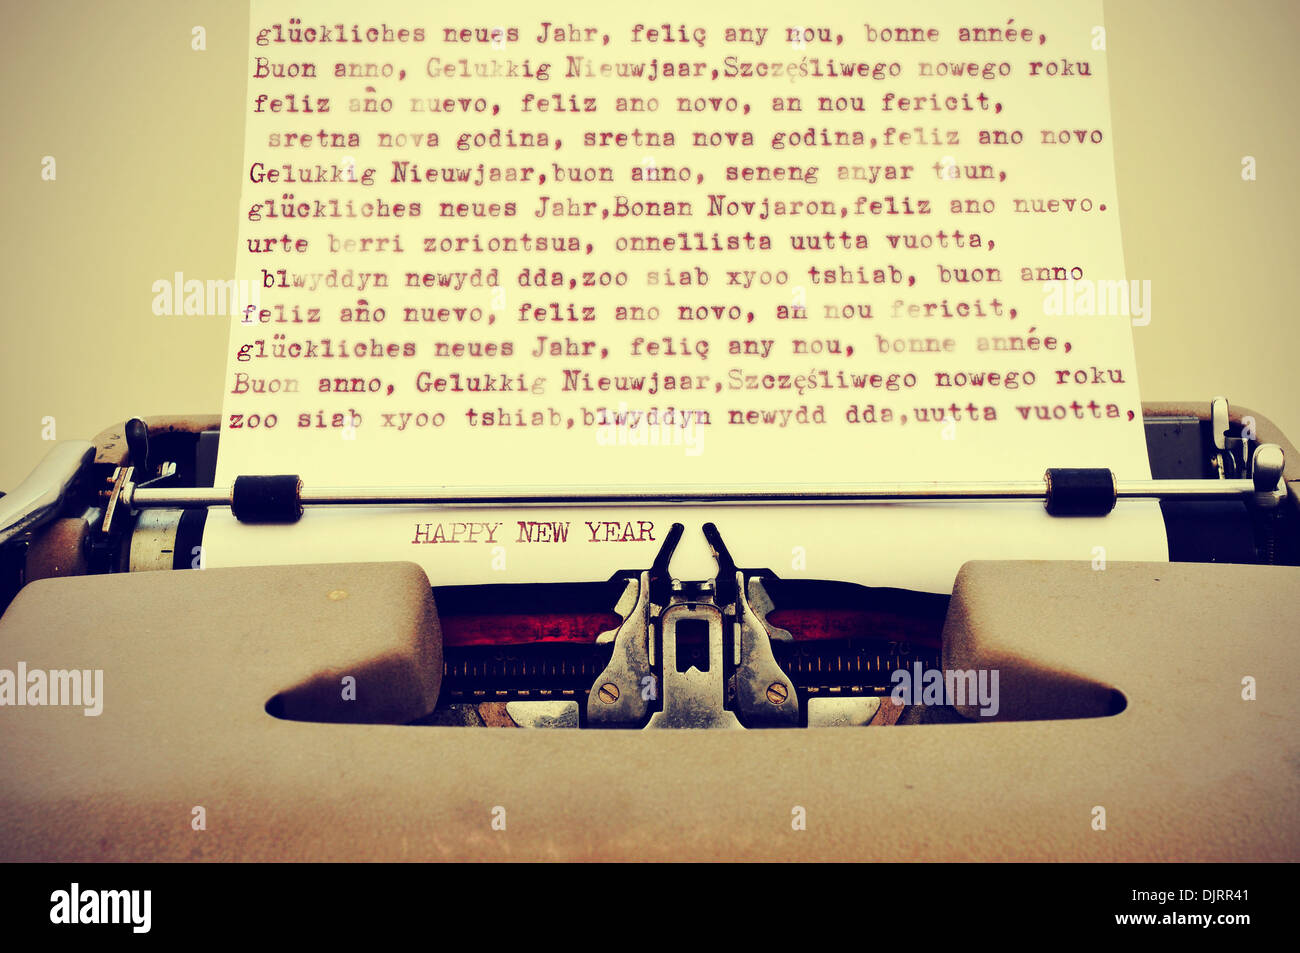 happy new year written in different languages with an old typewriter, with a retro effect - Stock Image